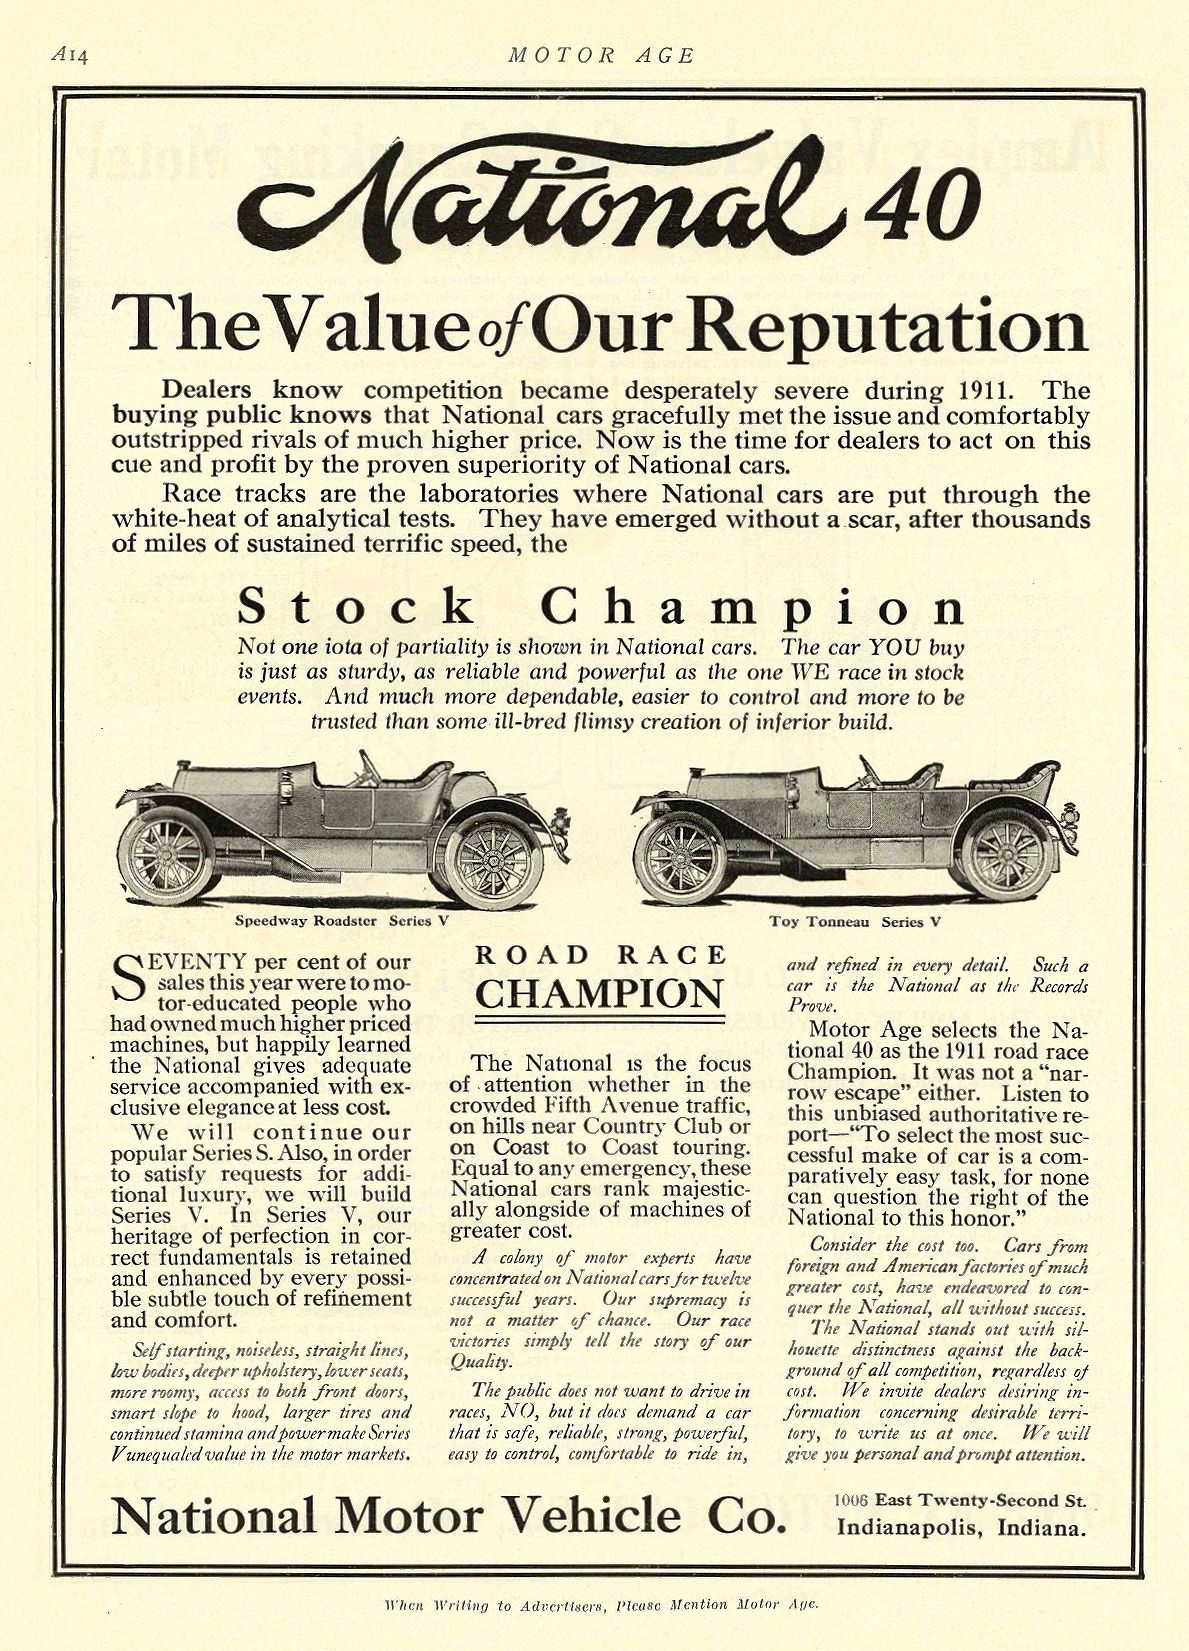 1912 1 11 NATIONAL National 40 The Value of Our Reputation National Motor Vehicle Co. Indianapolis, IND MOTOR AGE January 11, 1912 8.5″x12″ page A14